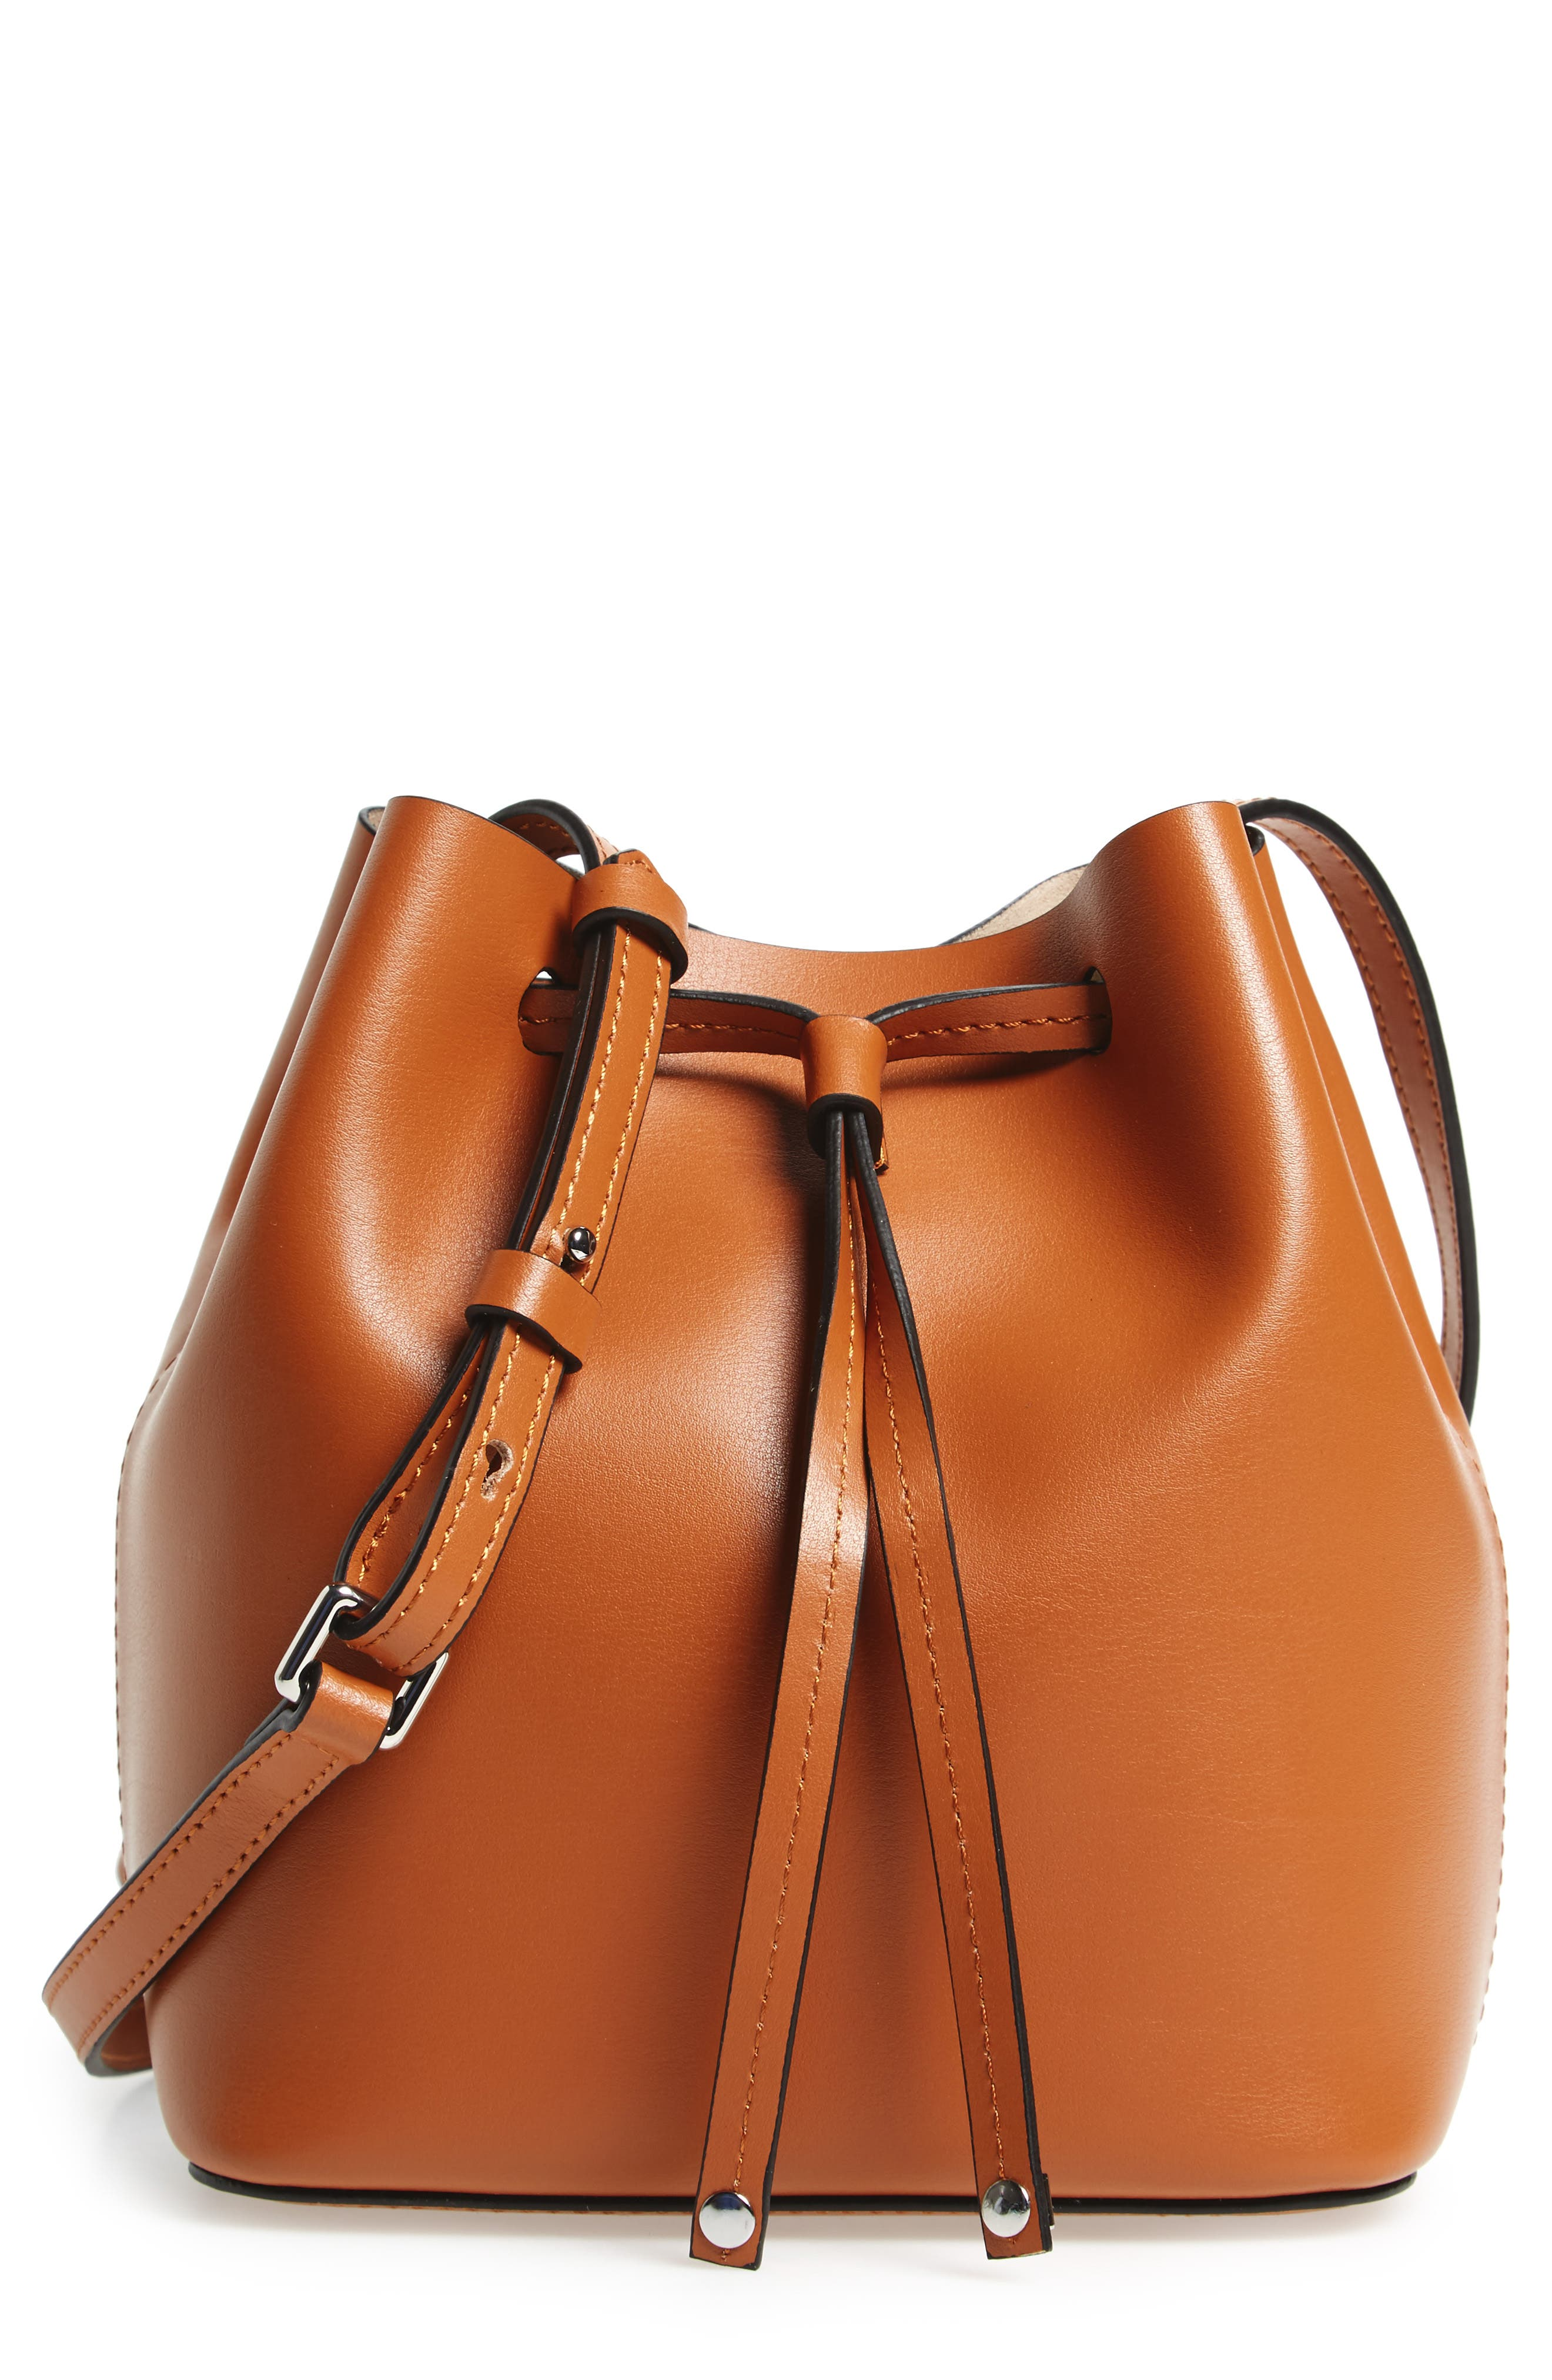 Main Image - Lodis Small Silicon Valley Blake RFID Leather Bucket Bag